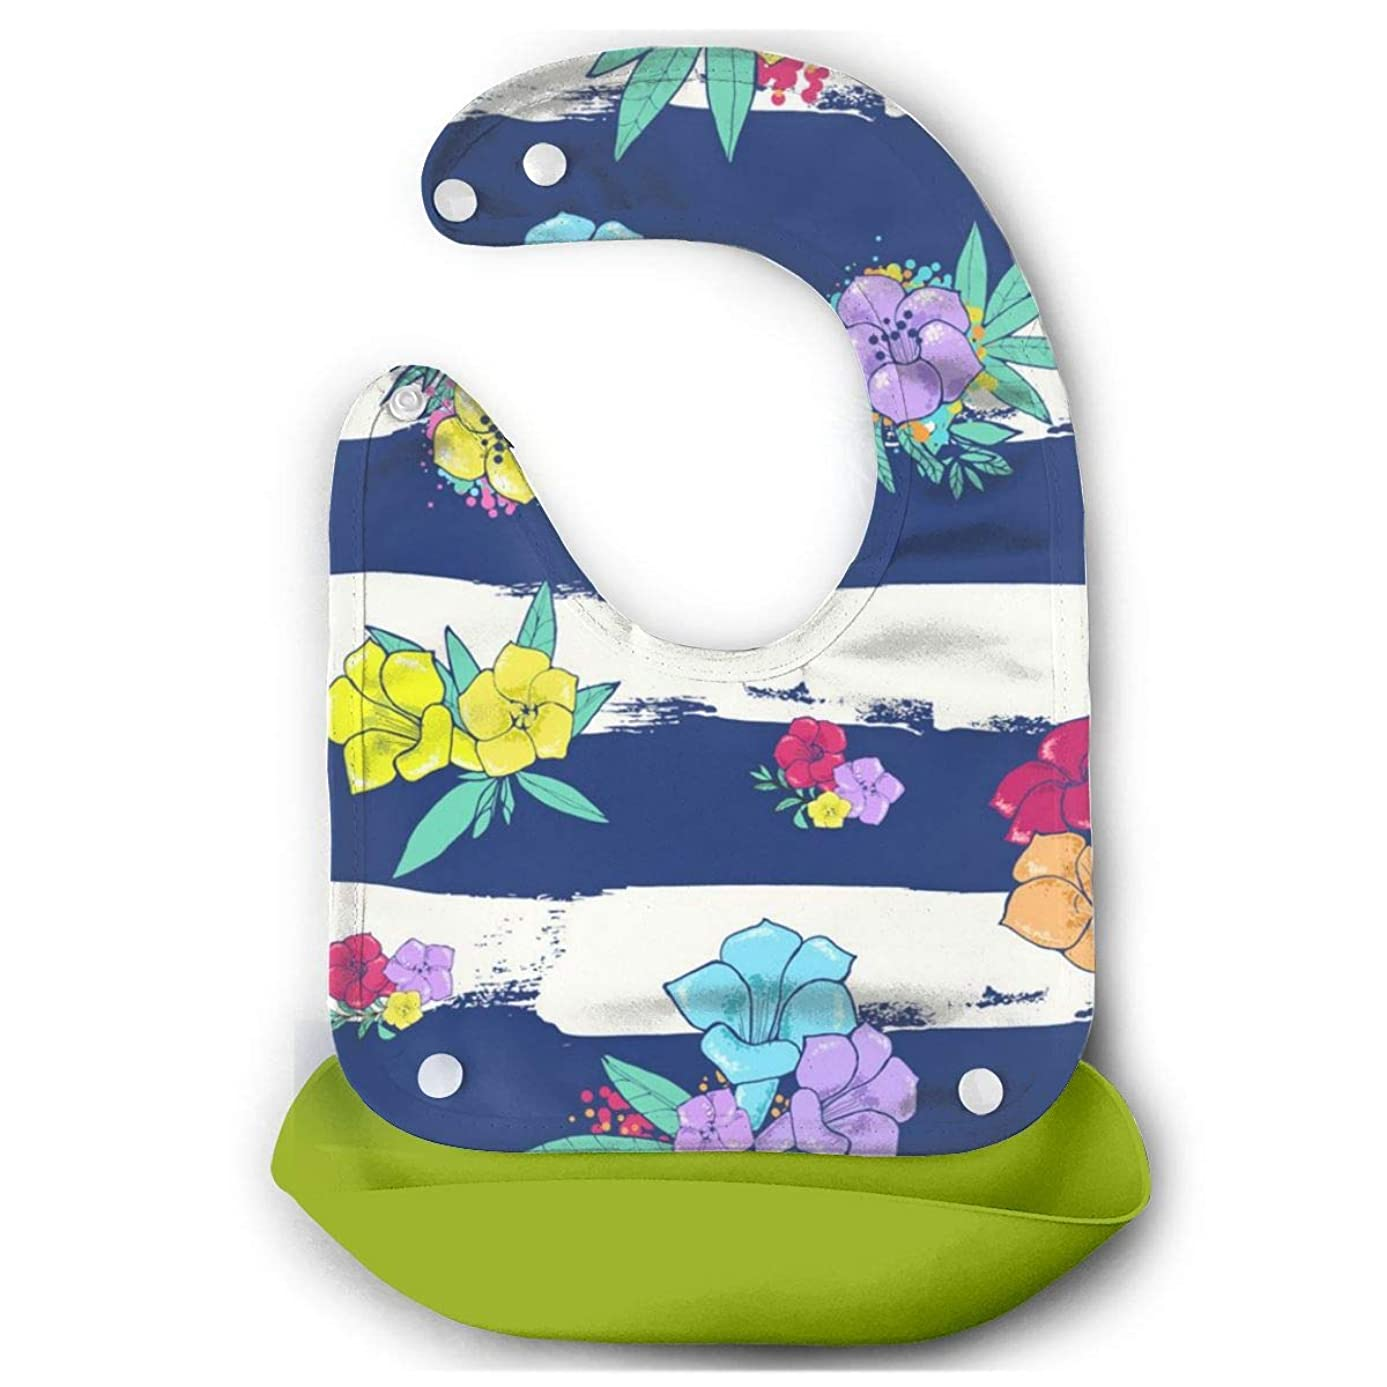 Baby Mouth Towel Colorful Flowers On A White-blue Dinner Baby Mouth Towel With Food Catcher Pocket